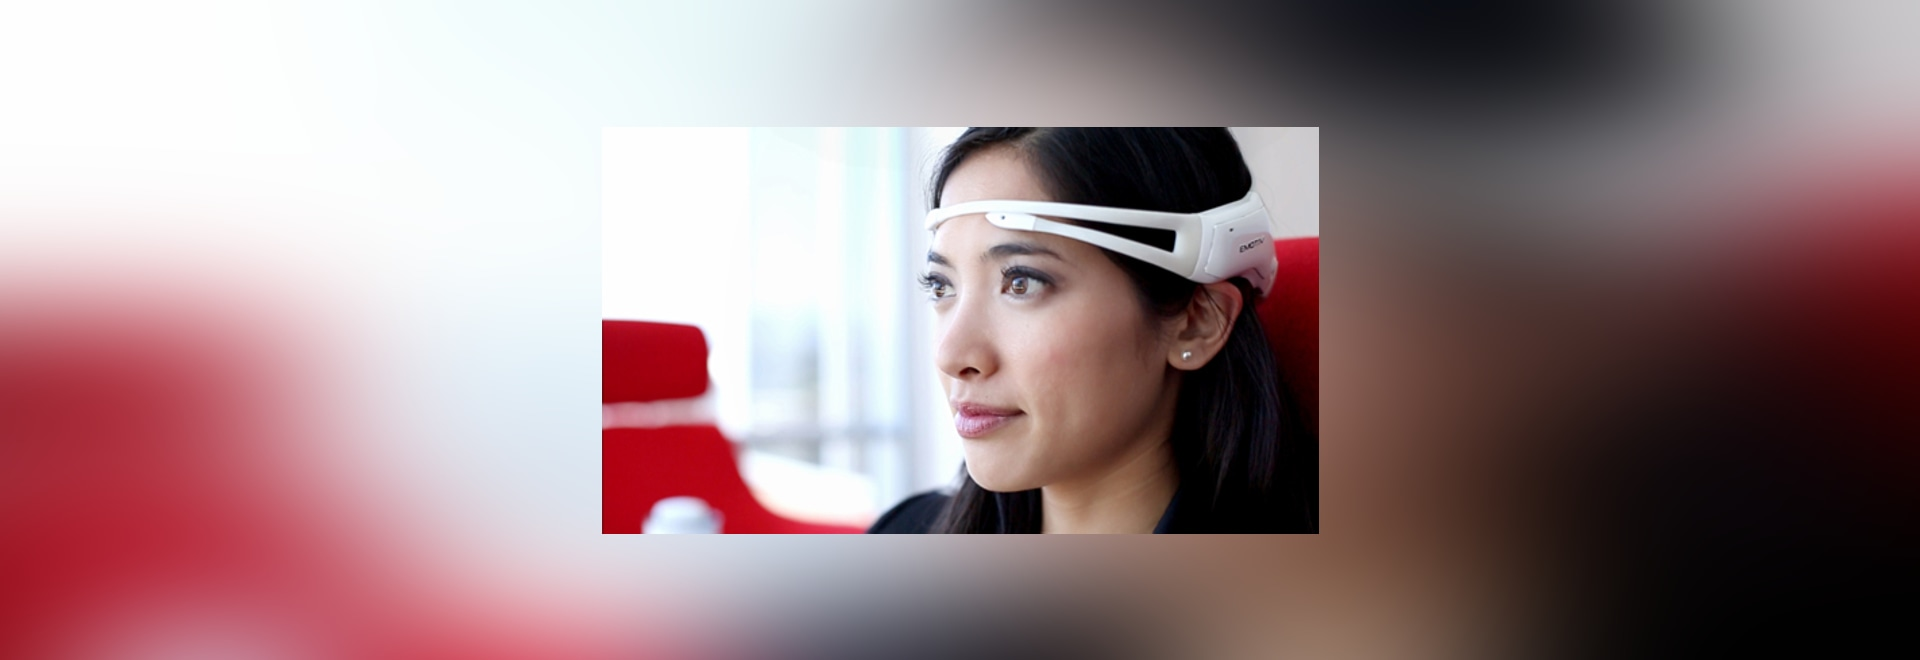 Philips and Accenture utilized the Emotiv Insight, a 5-channel EEG, to control various devices. [image via Philips Healthcare, Emotiv]